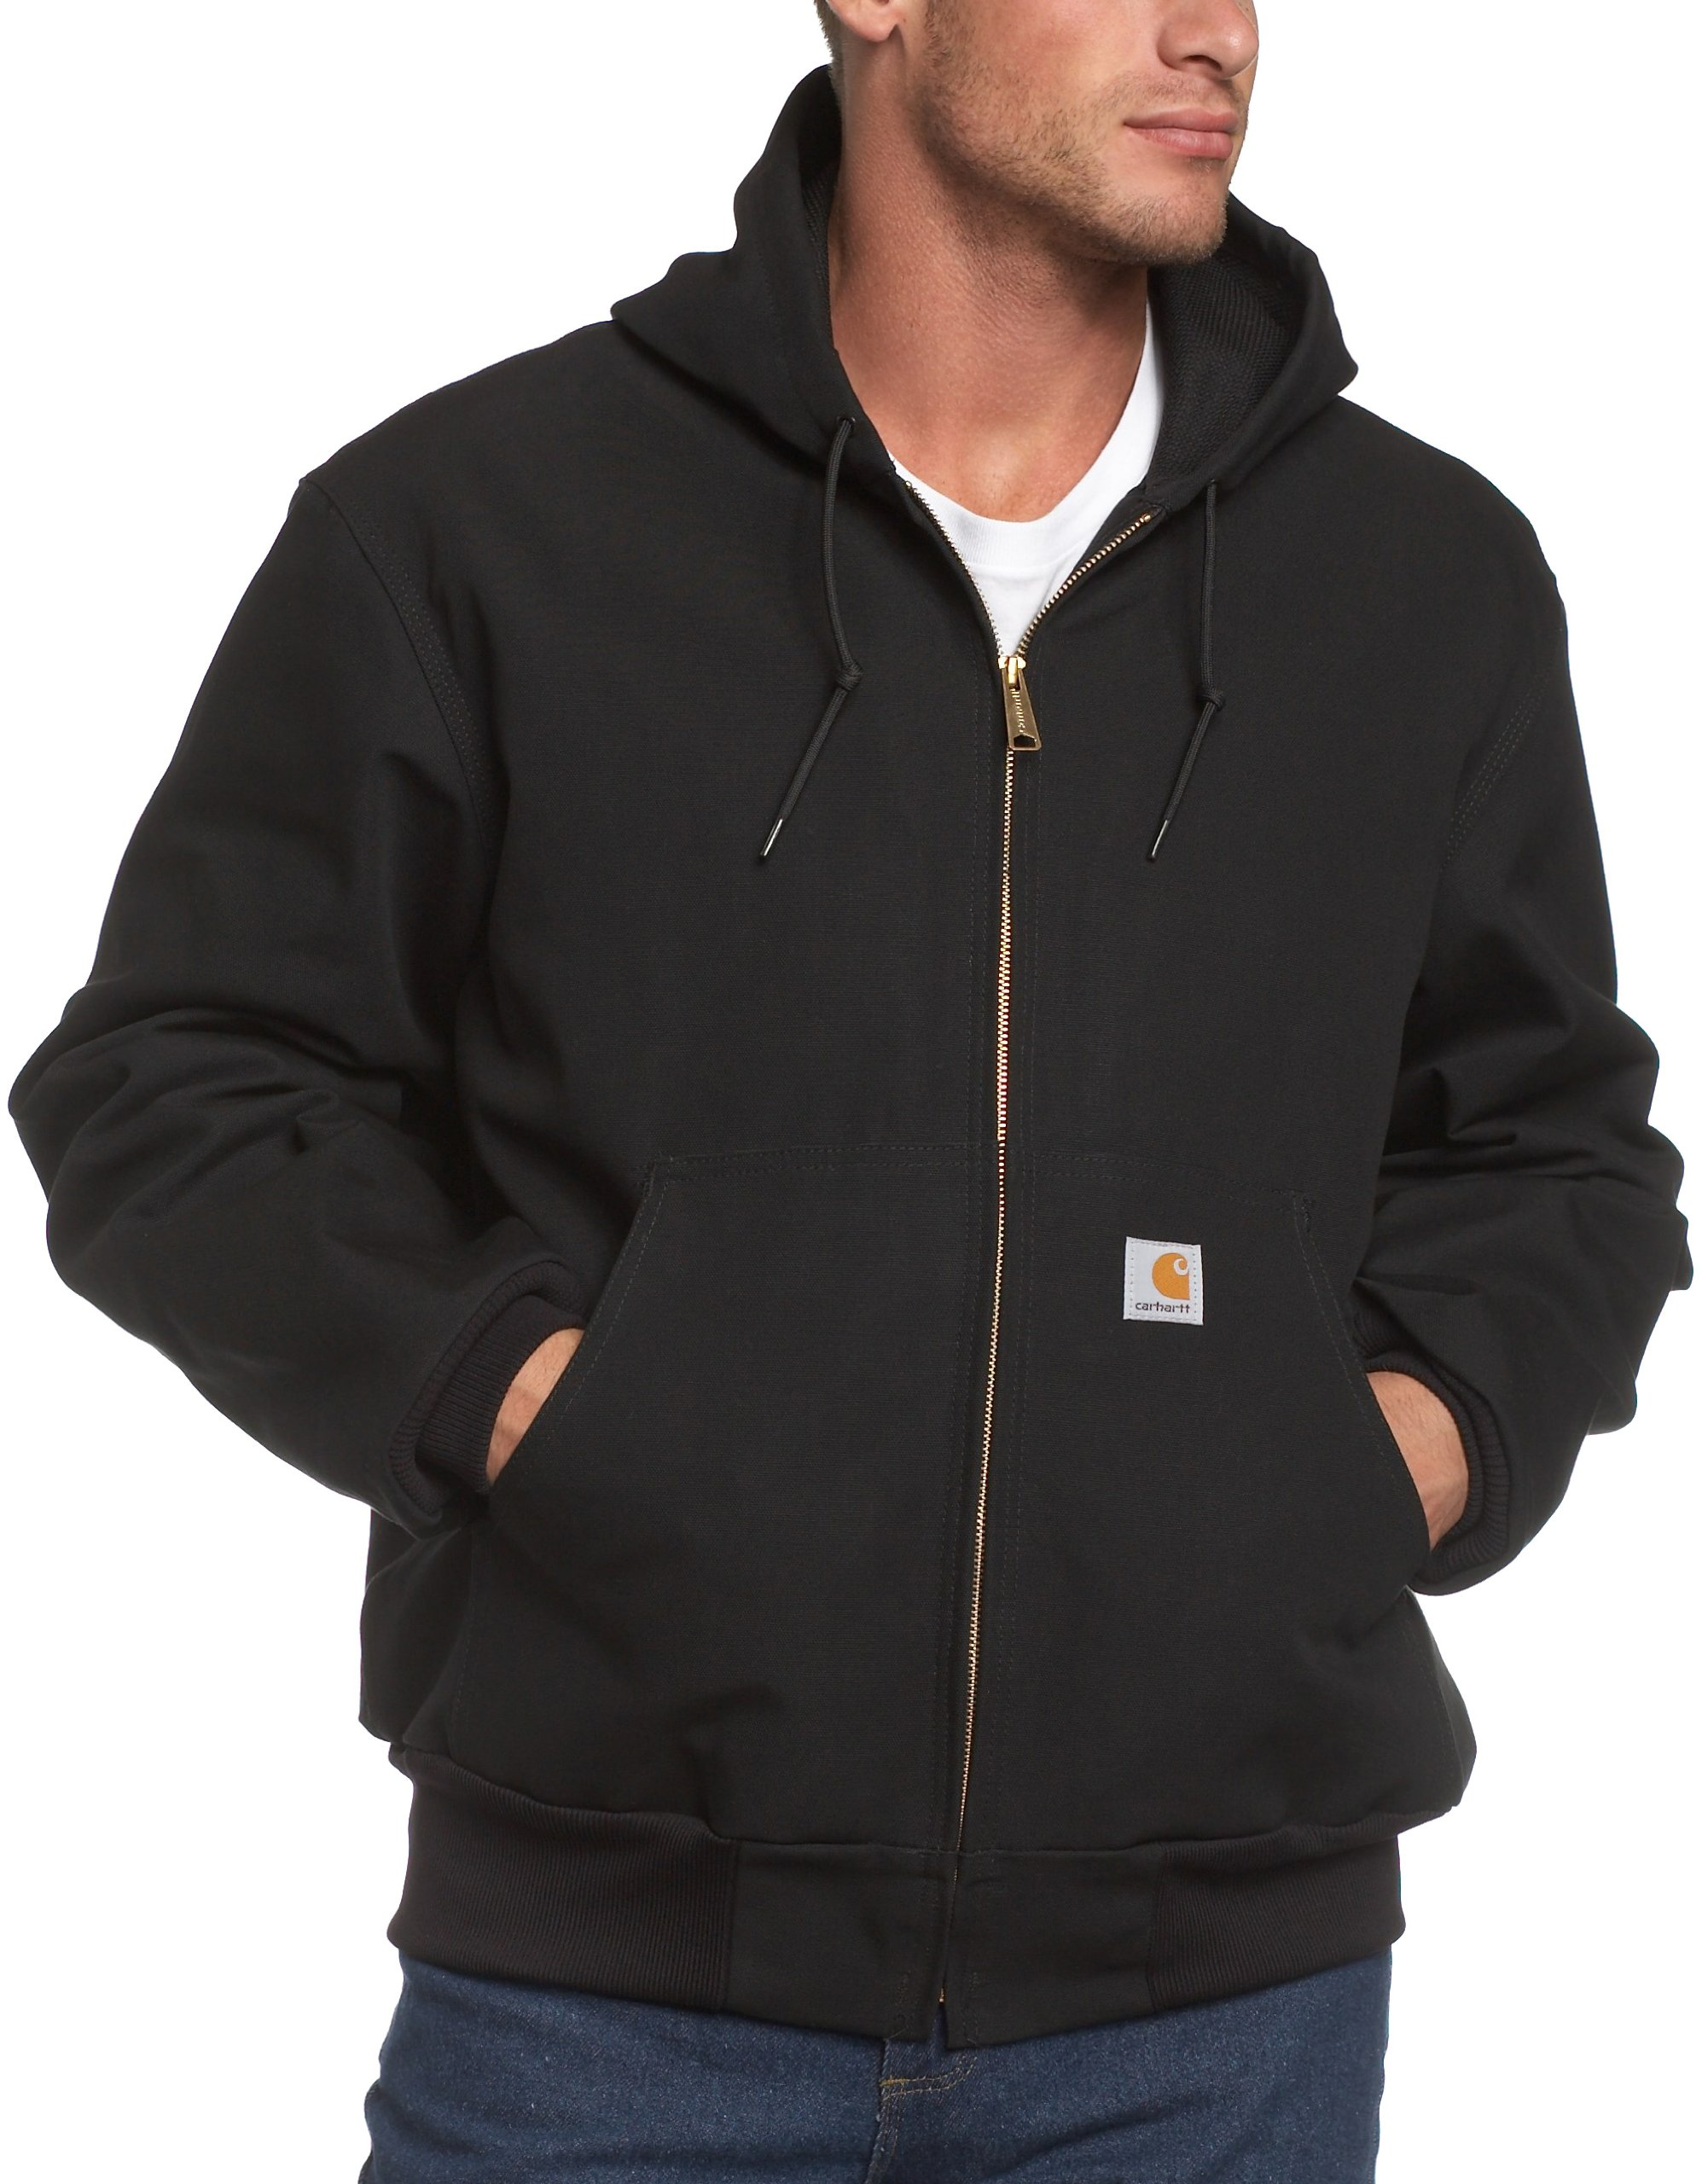 Carhartt Men's Big & Tall Thermal Lined Duck Active Jacket J131,Black,XXXXX-Large by Carhartt